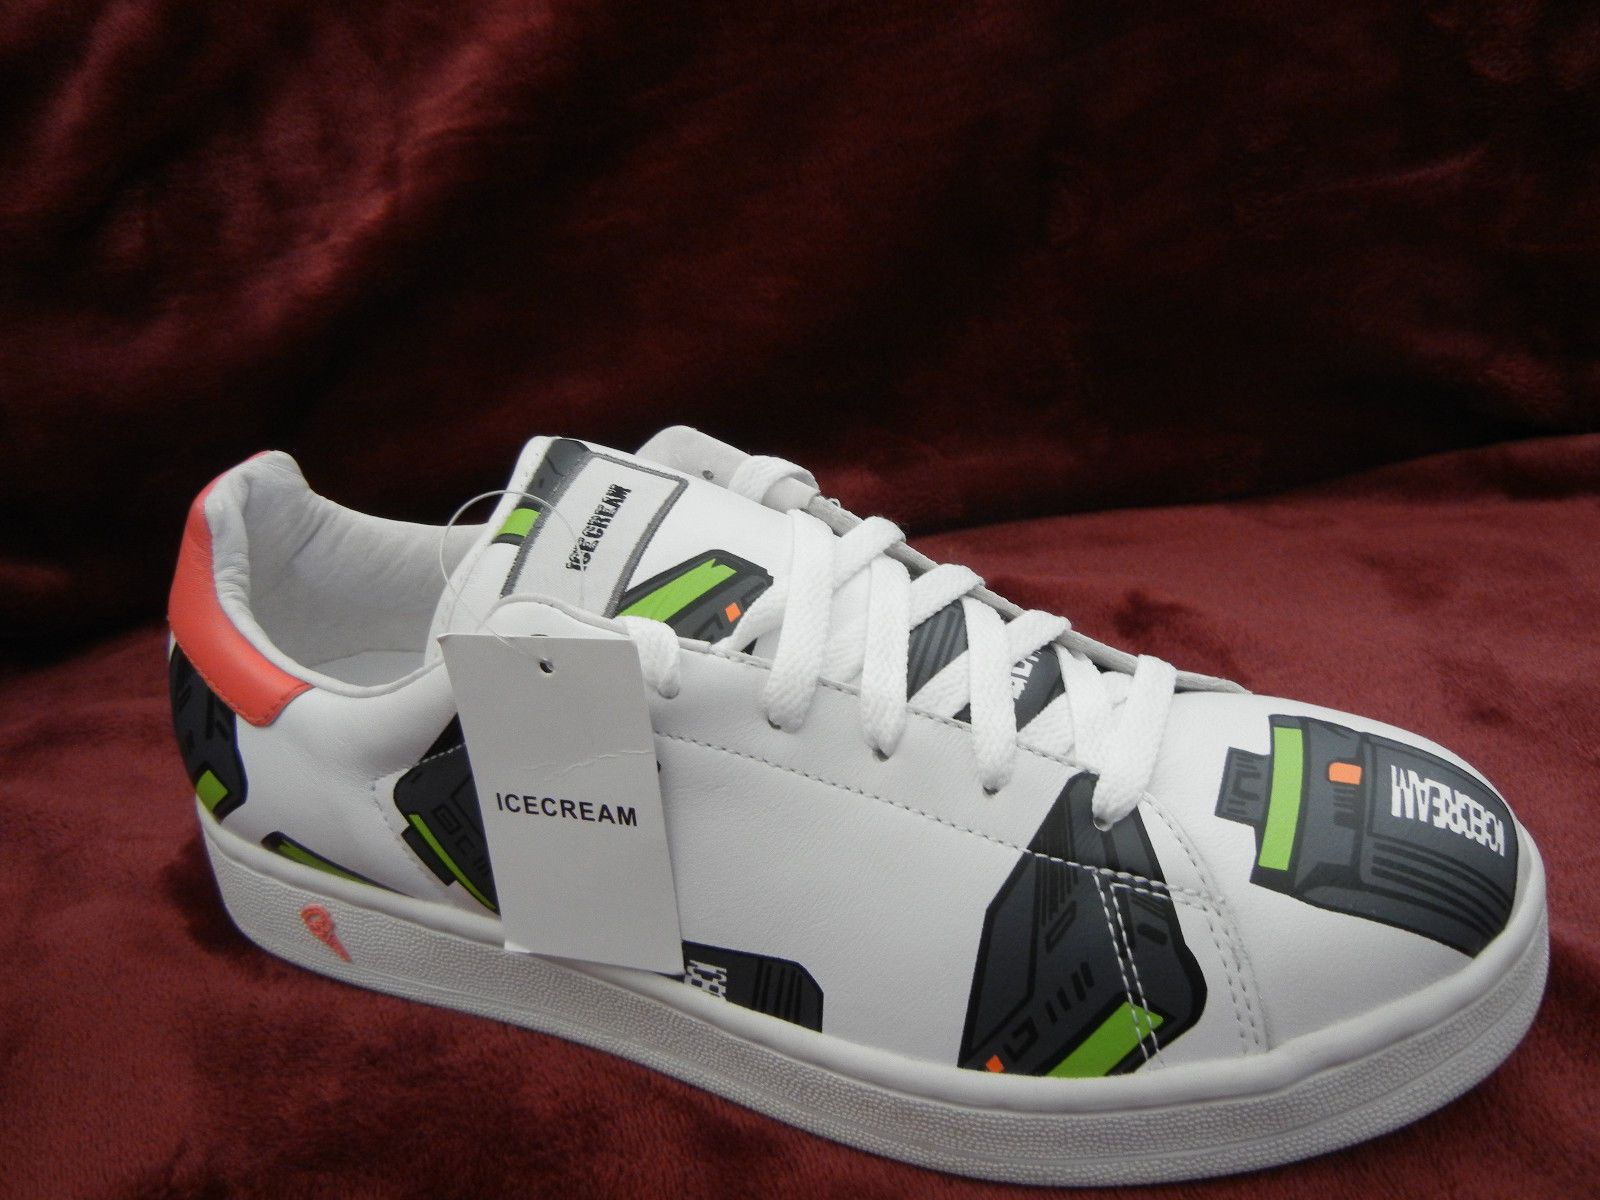 c2a3fe6aee44 Reebok Ice Cream  BEEPER FLAVOR size 10.5 Pharrell BBC white Pager sneakers  DS